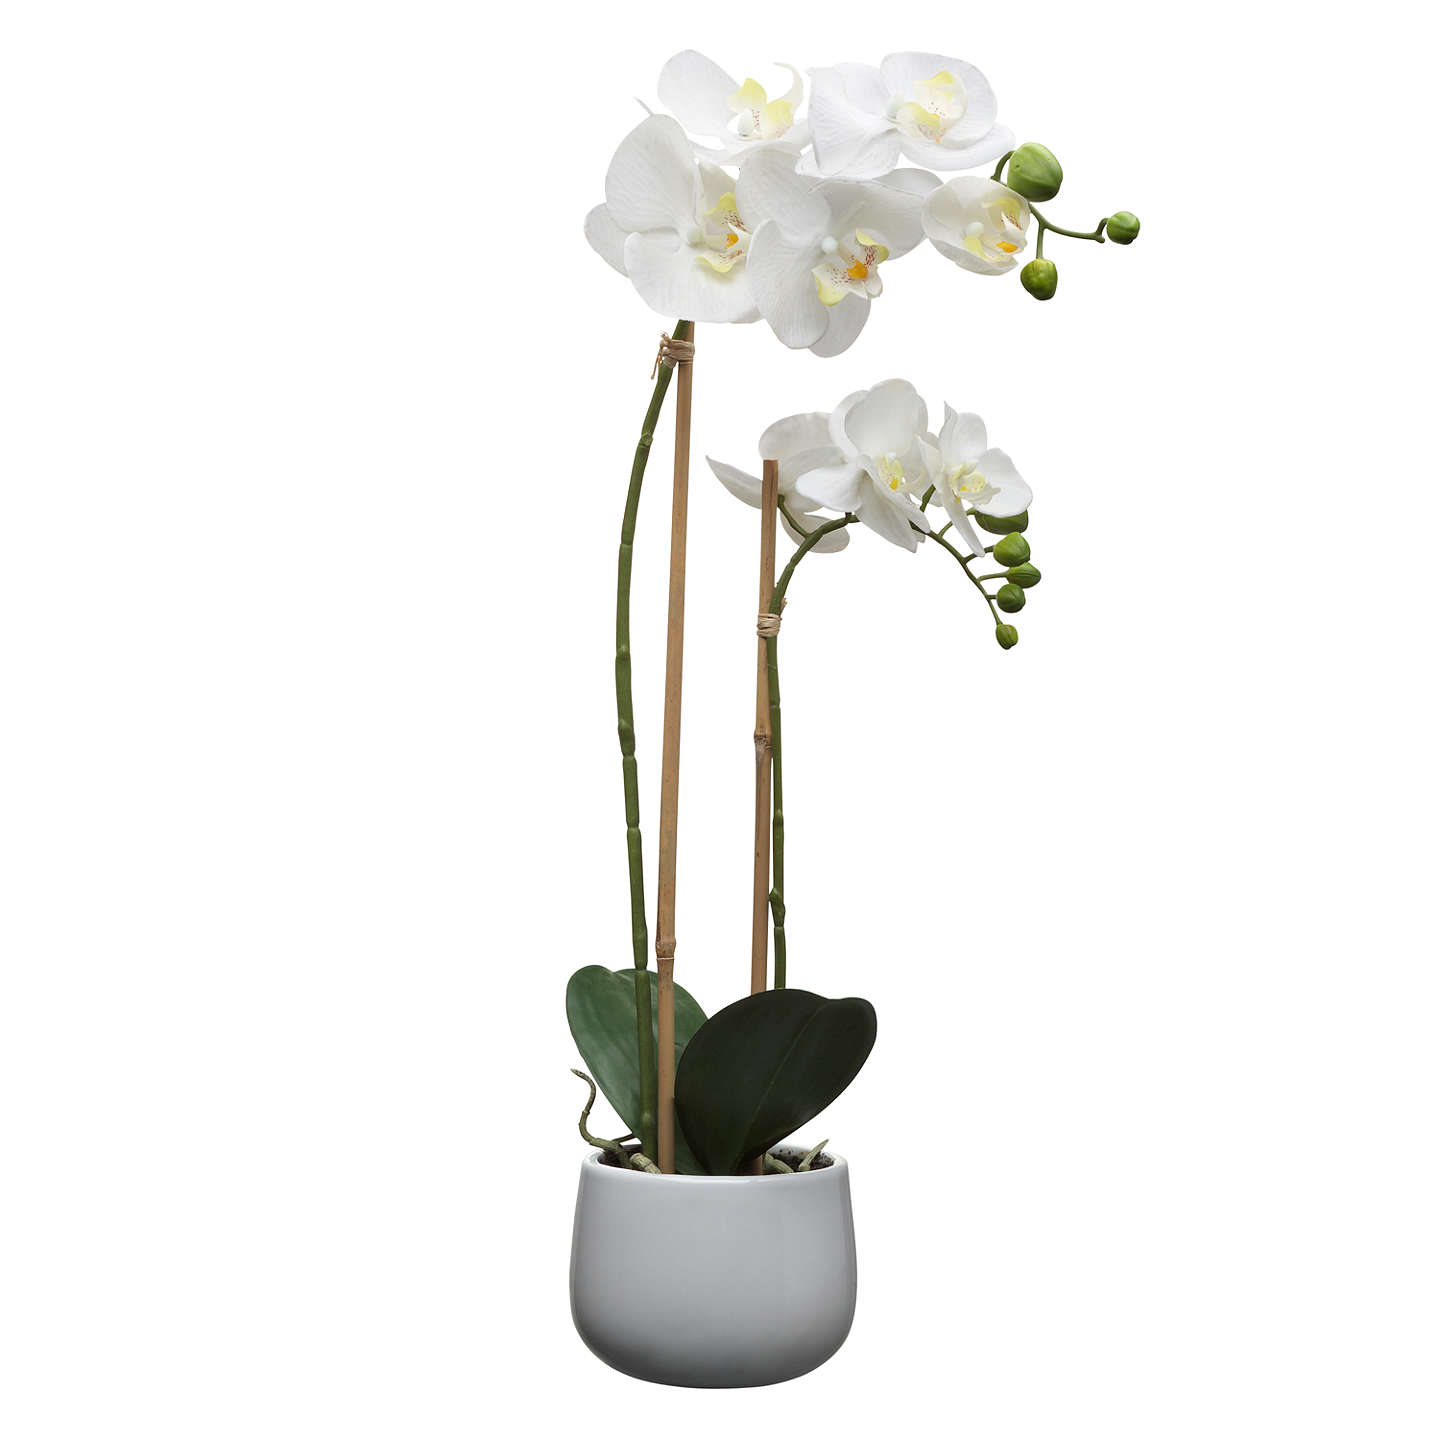 House by john lewis artificial orchid white large at john lewis buyhouse by john lewis artificial orchid white large online at johnlewis mightylinksfo